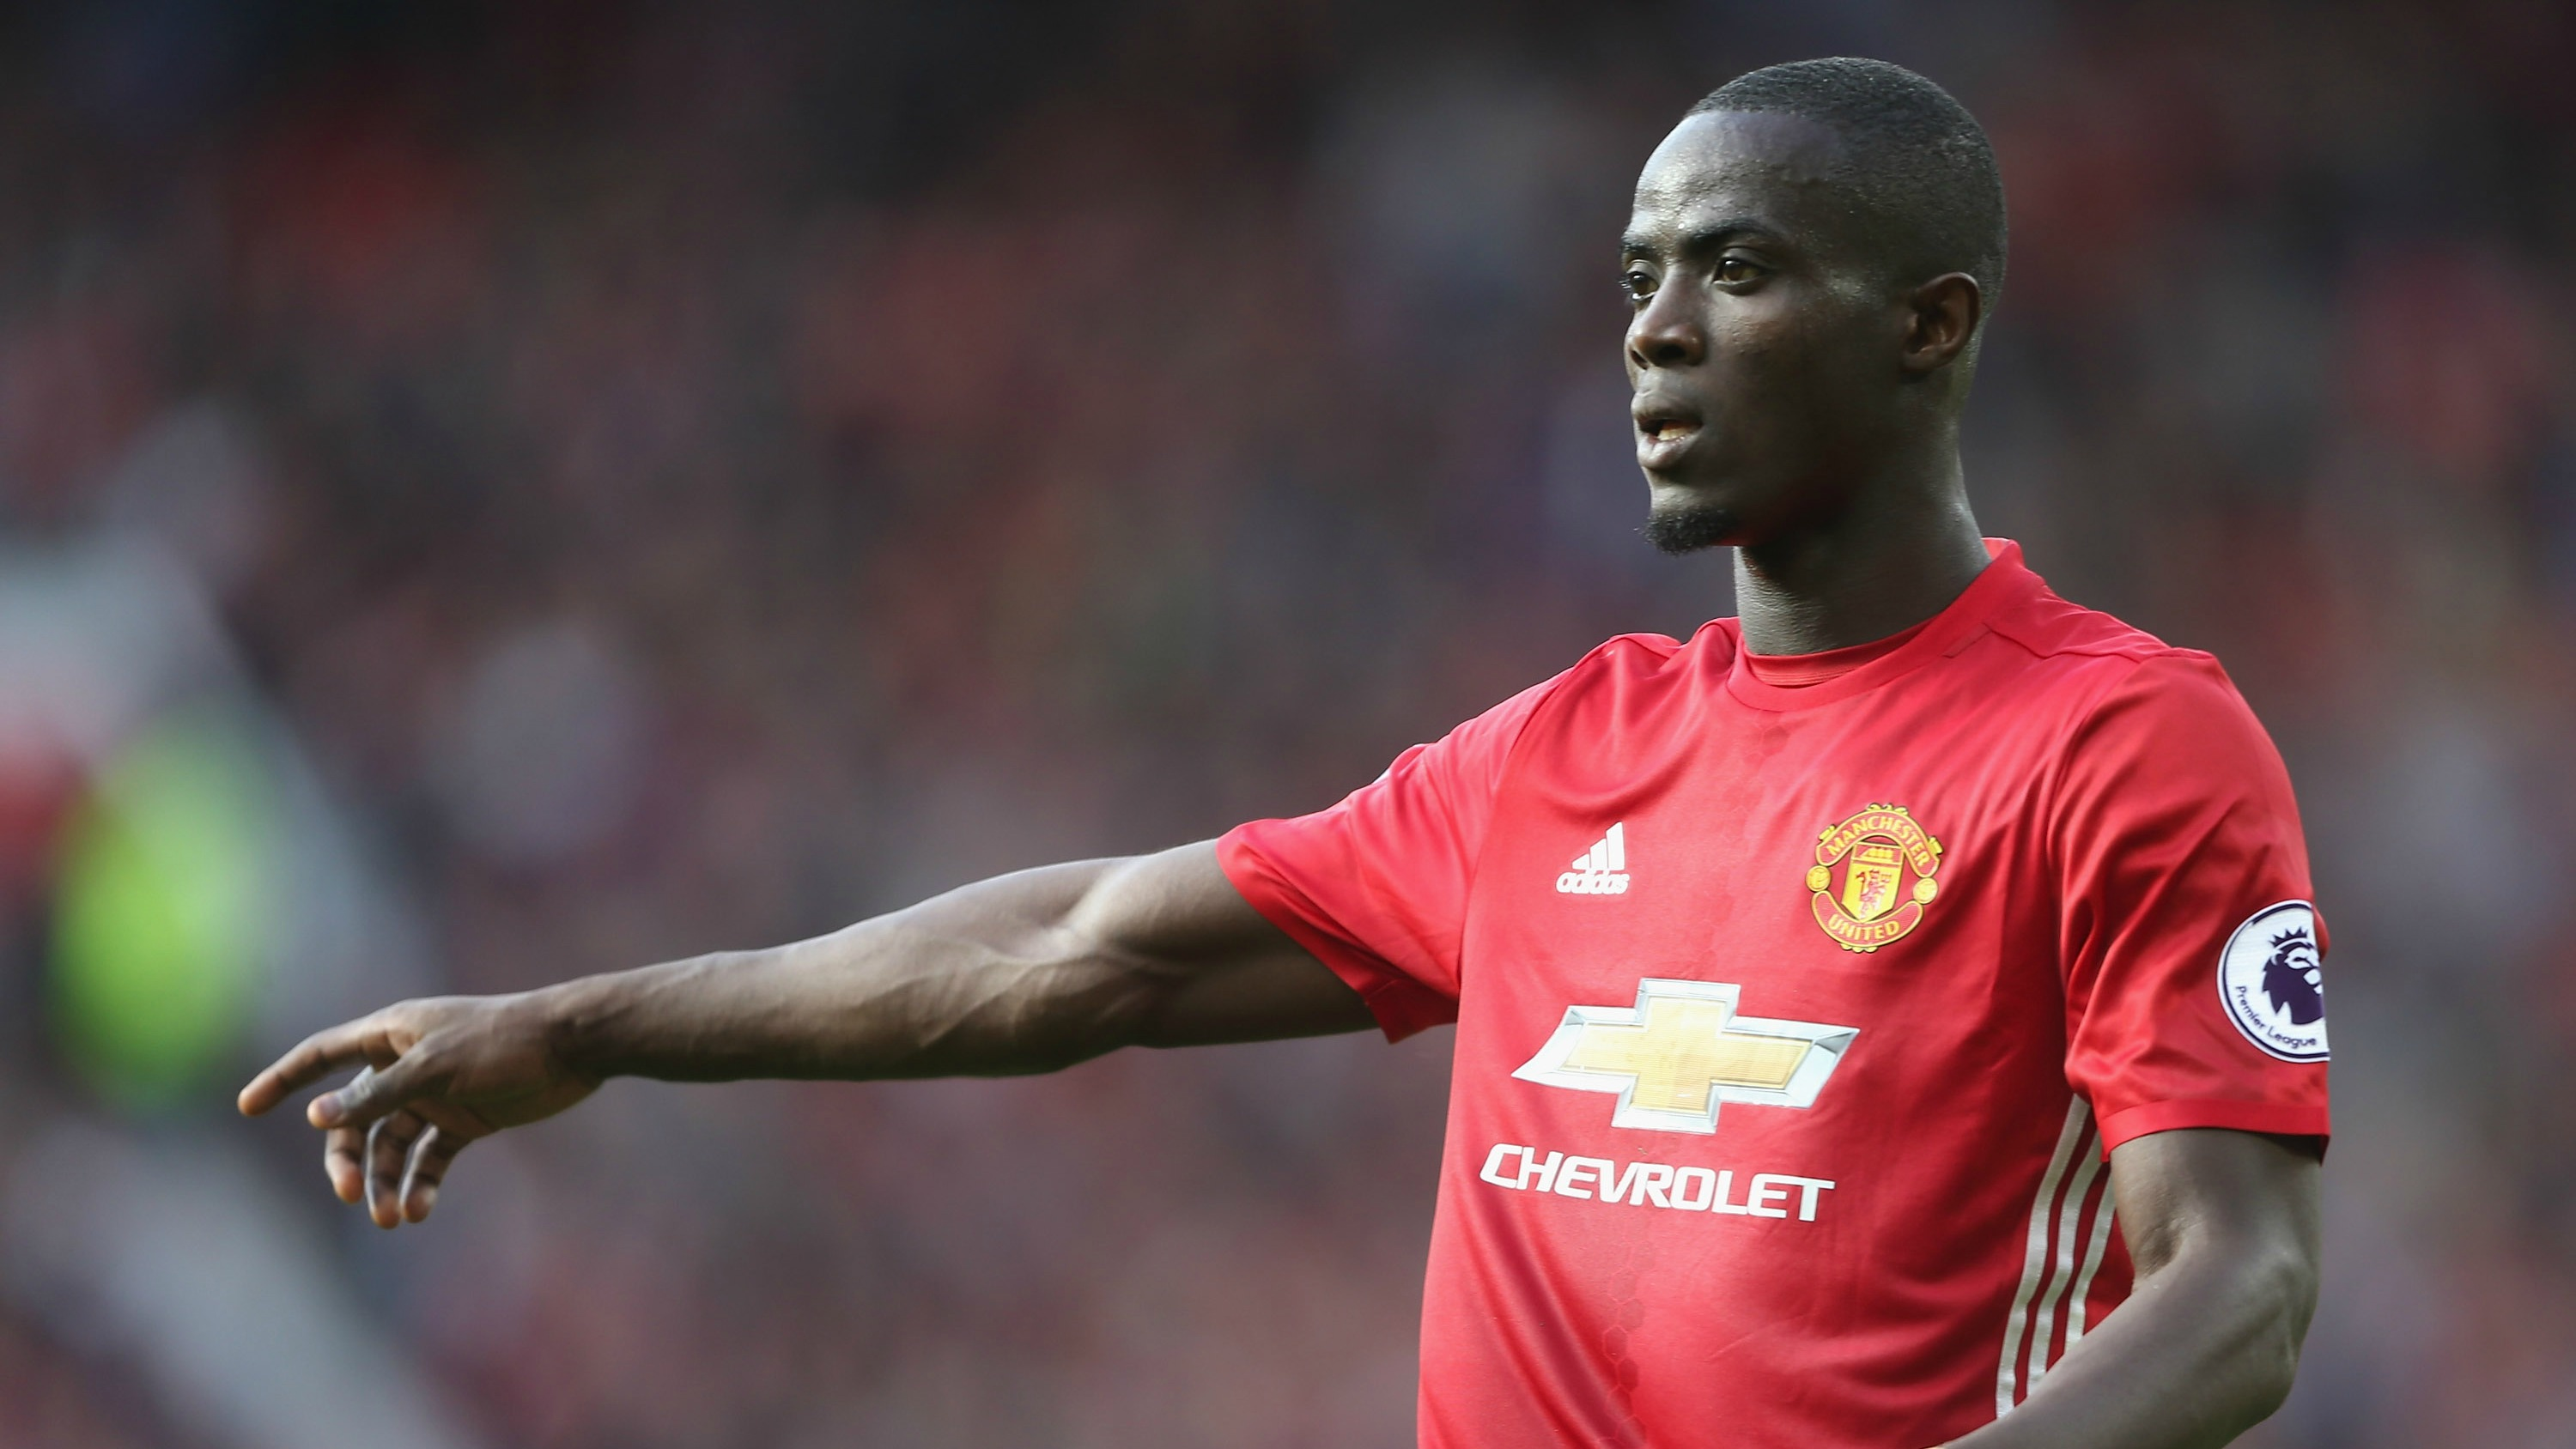 Man U's Eric Bailly wore jelly shoes to training and got roasted comprehensively for it